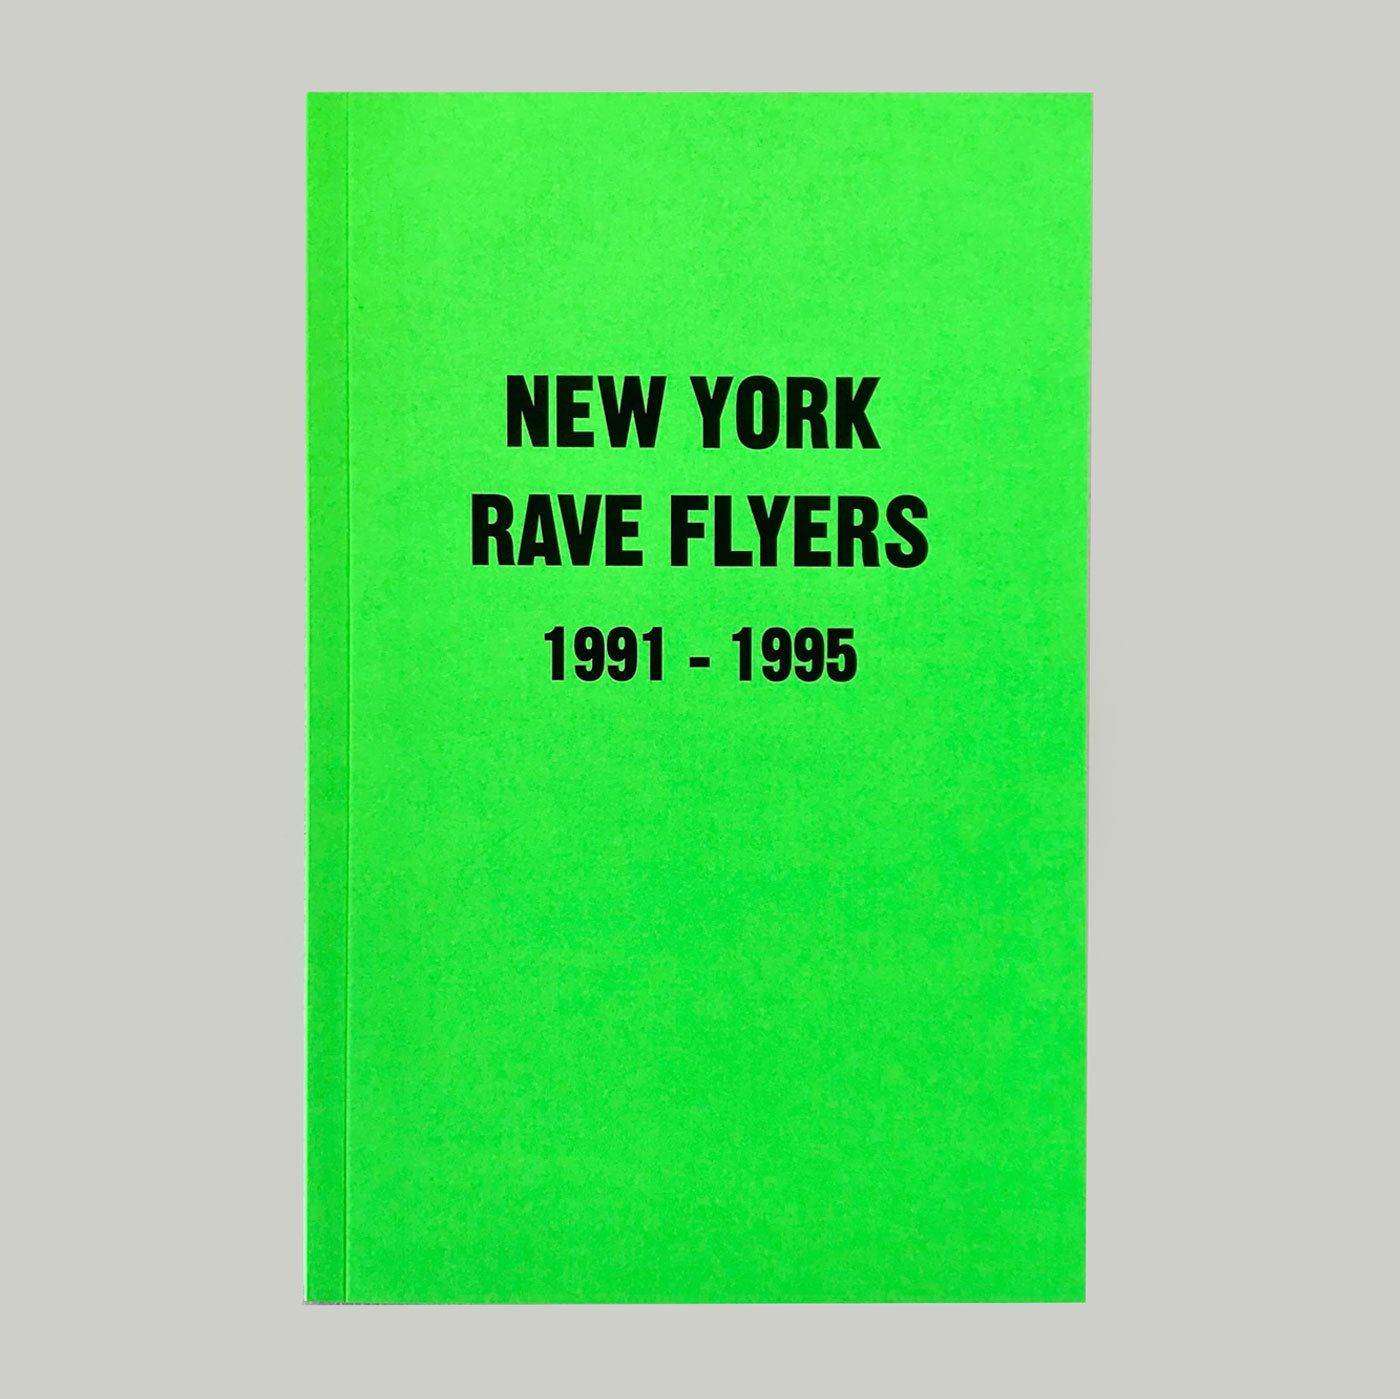 New York Rave Flyers 1991-1995 by Ernie Villalobos